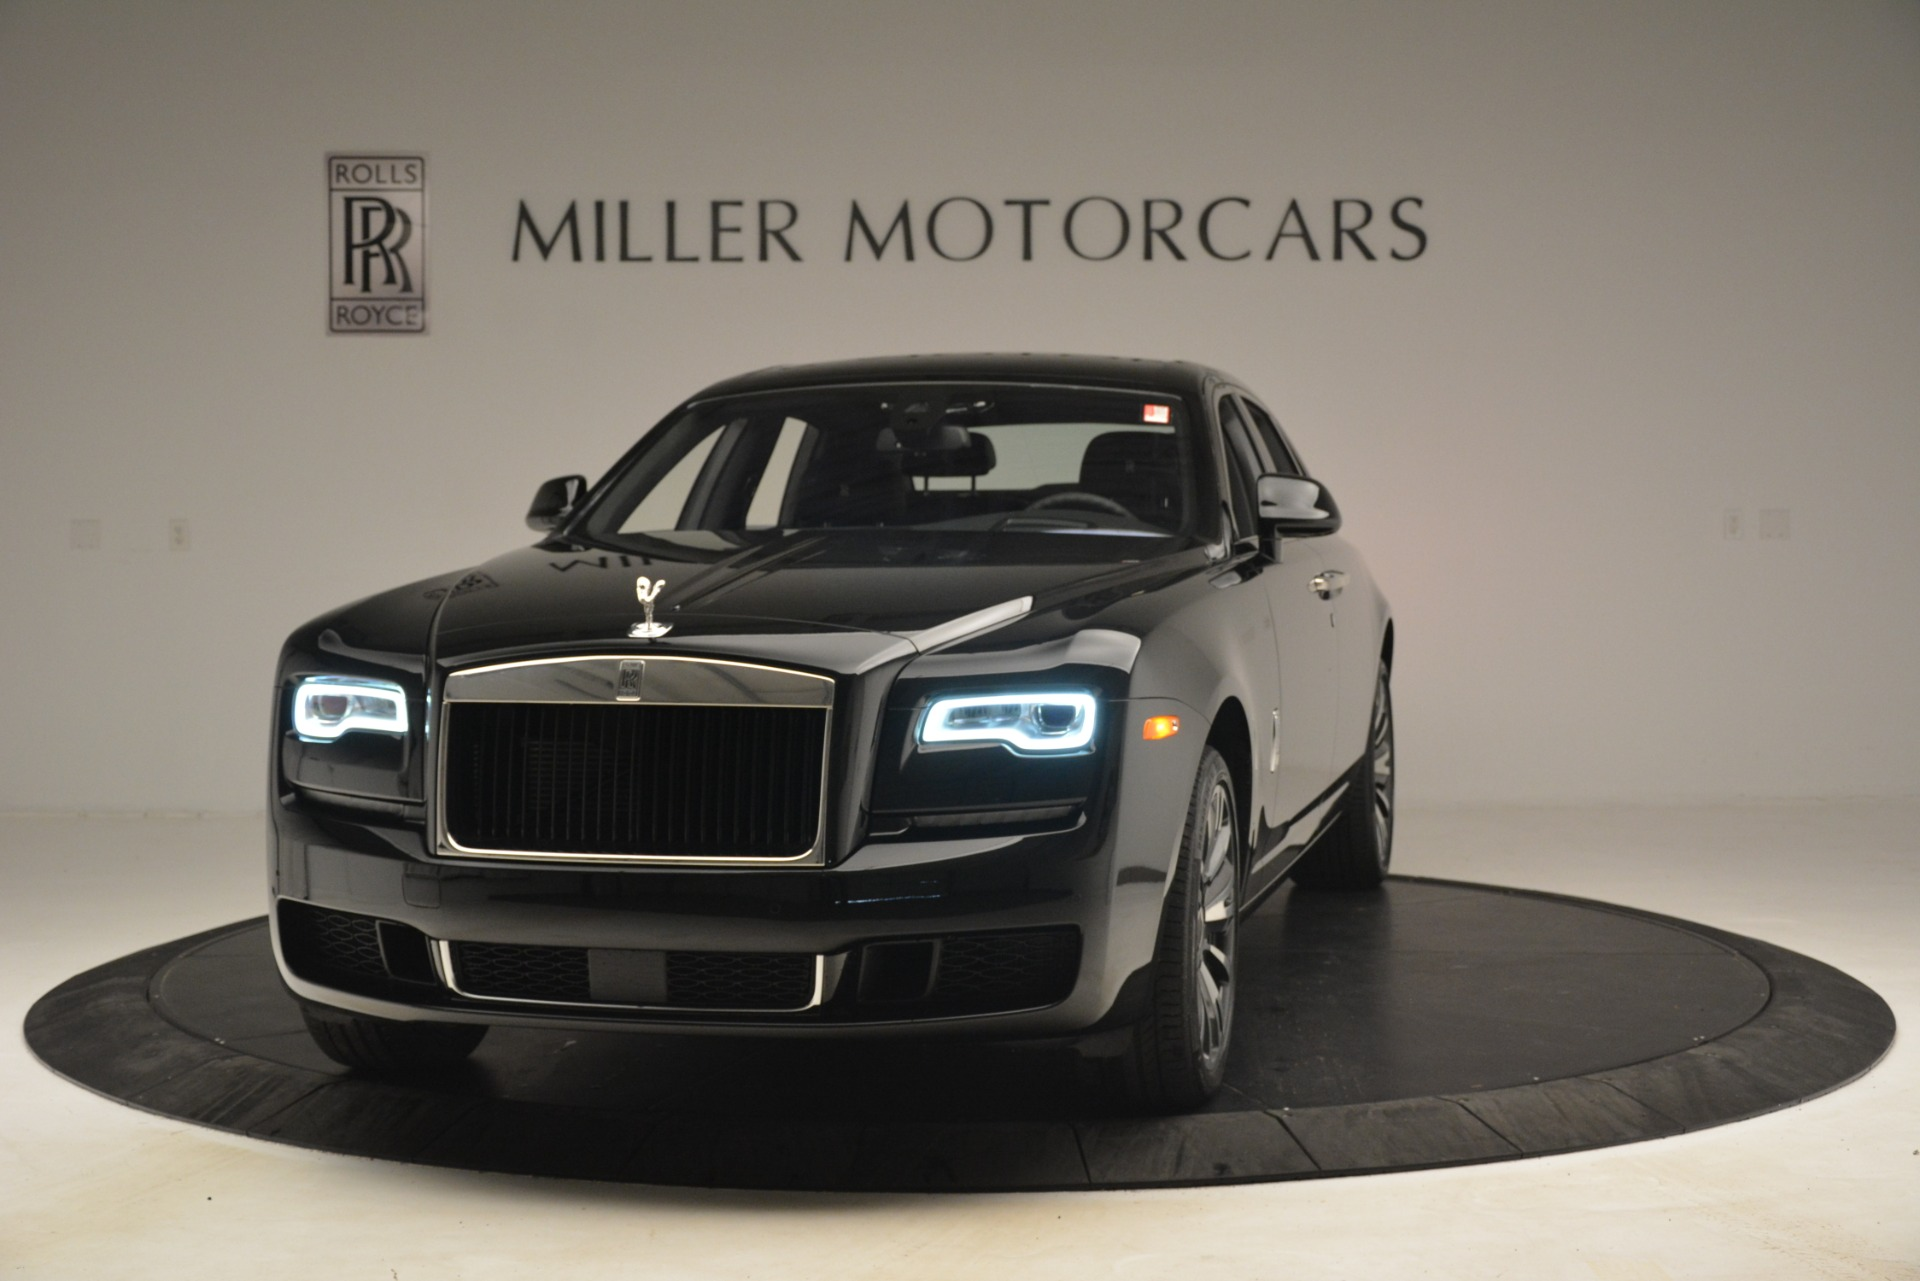 New 2019 Rolls-Royce Ghost for sale $362,950 at McLaren Greenwich in Greenwich CT 06830 1